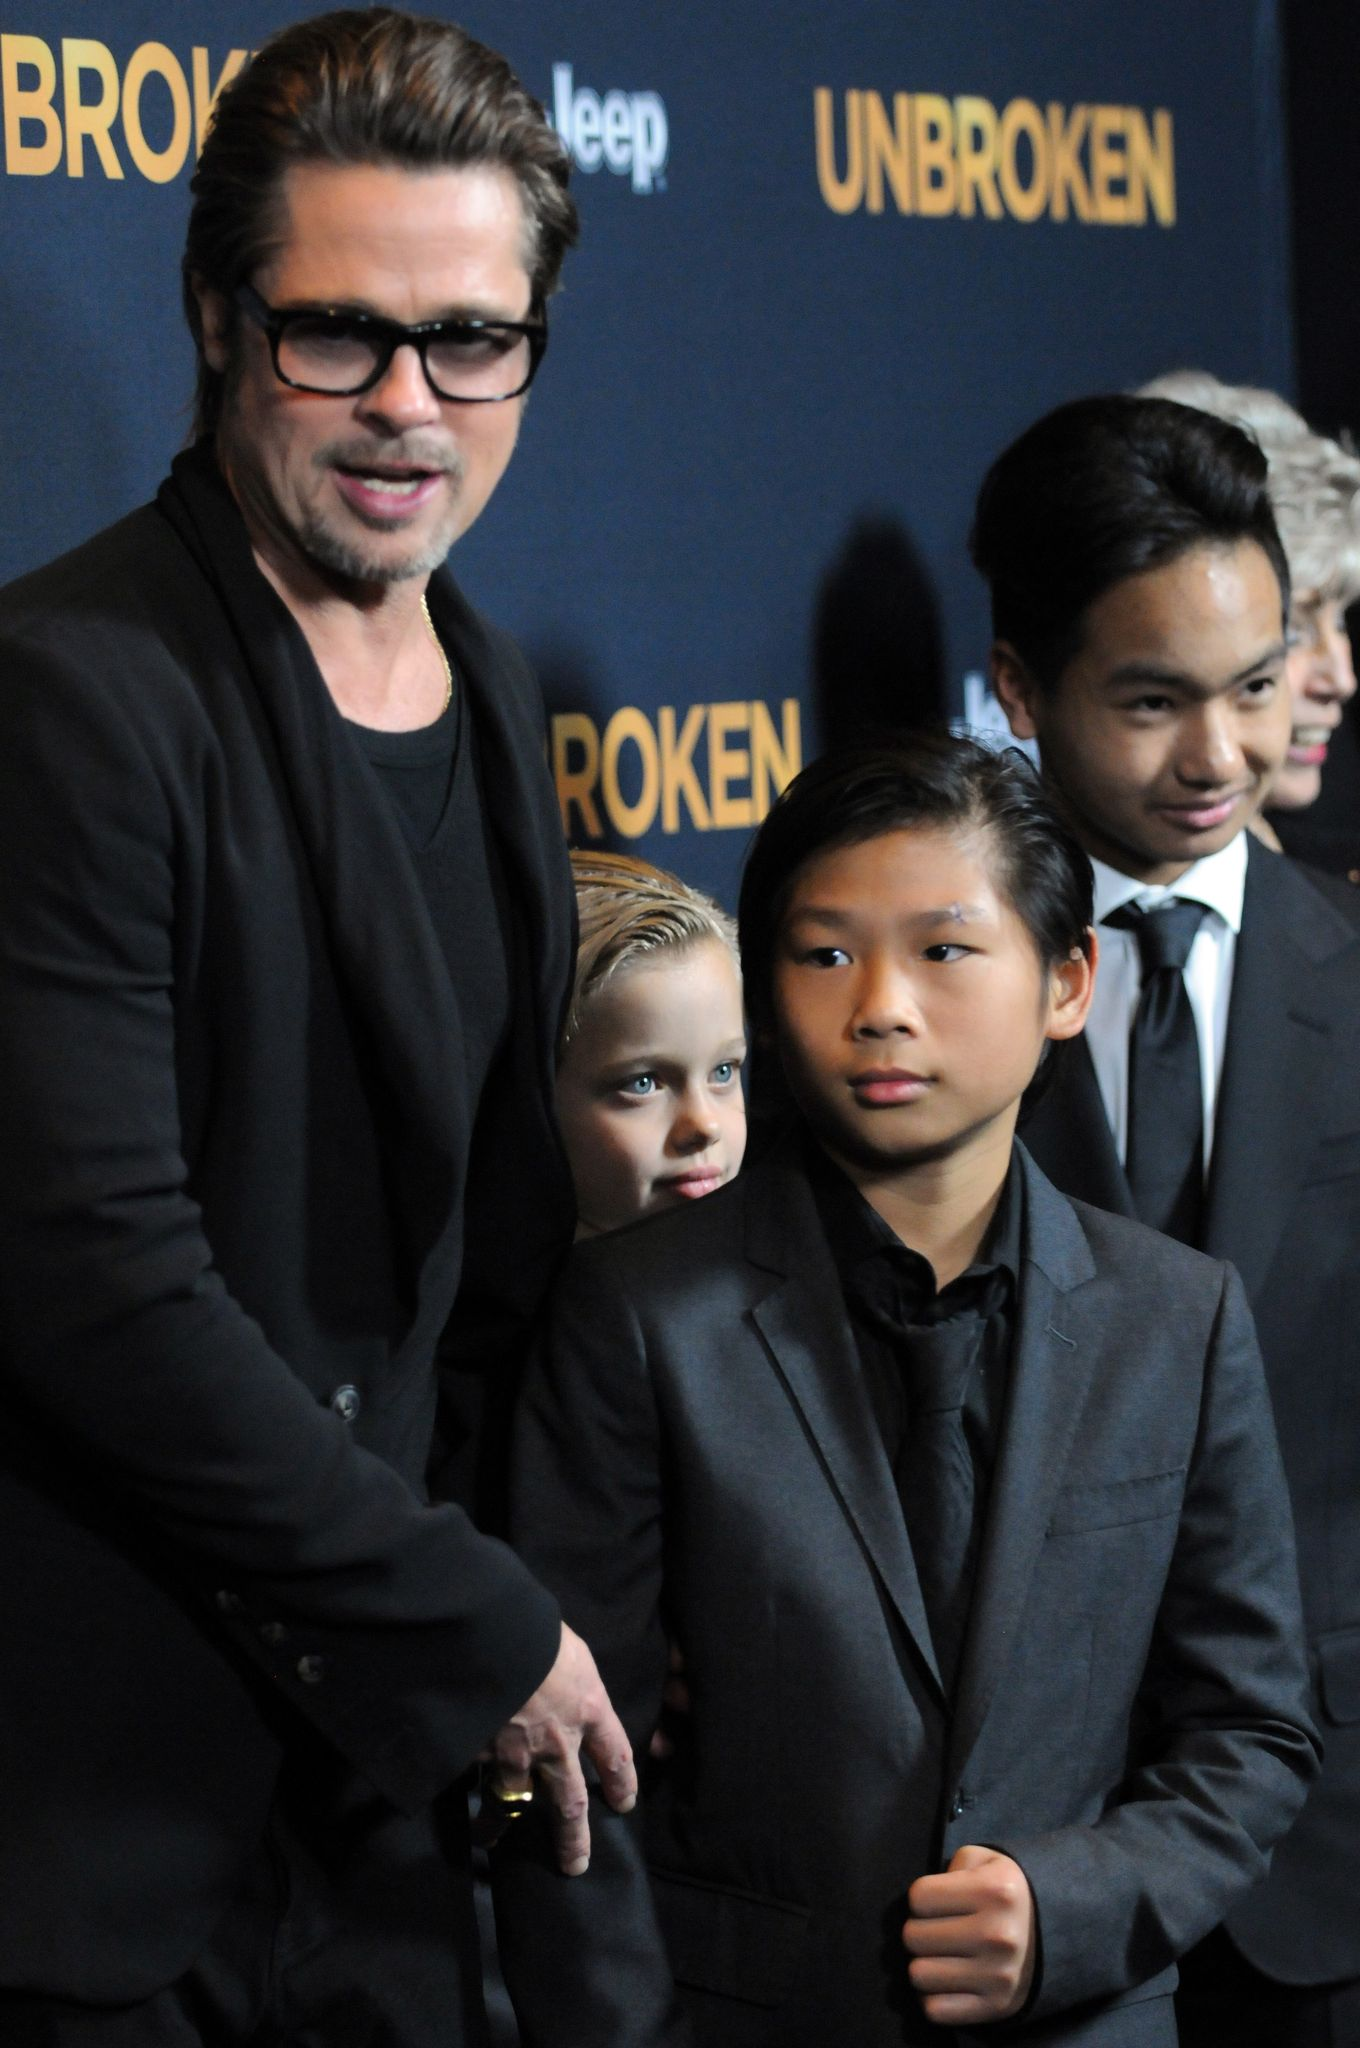 Brad Pitt with Pax, Maddox and Shiloh / Getty Images